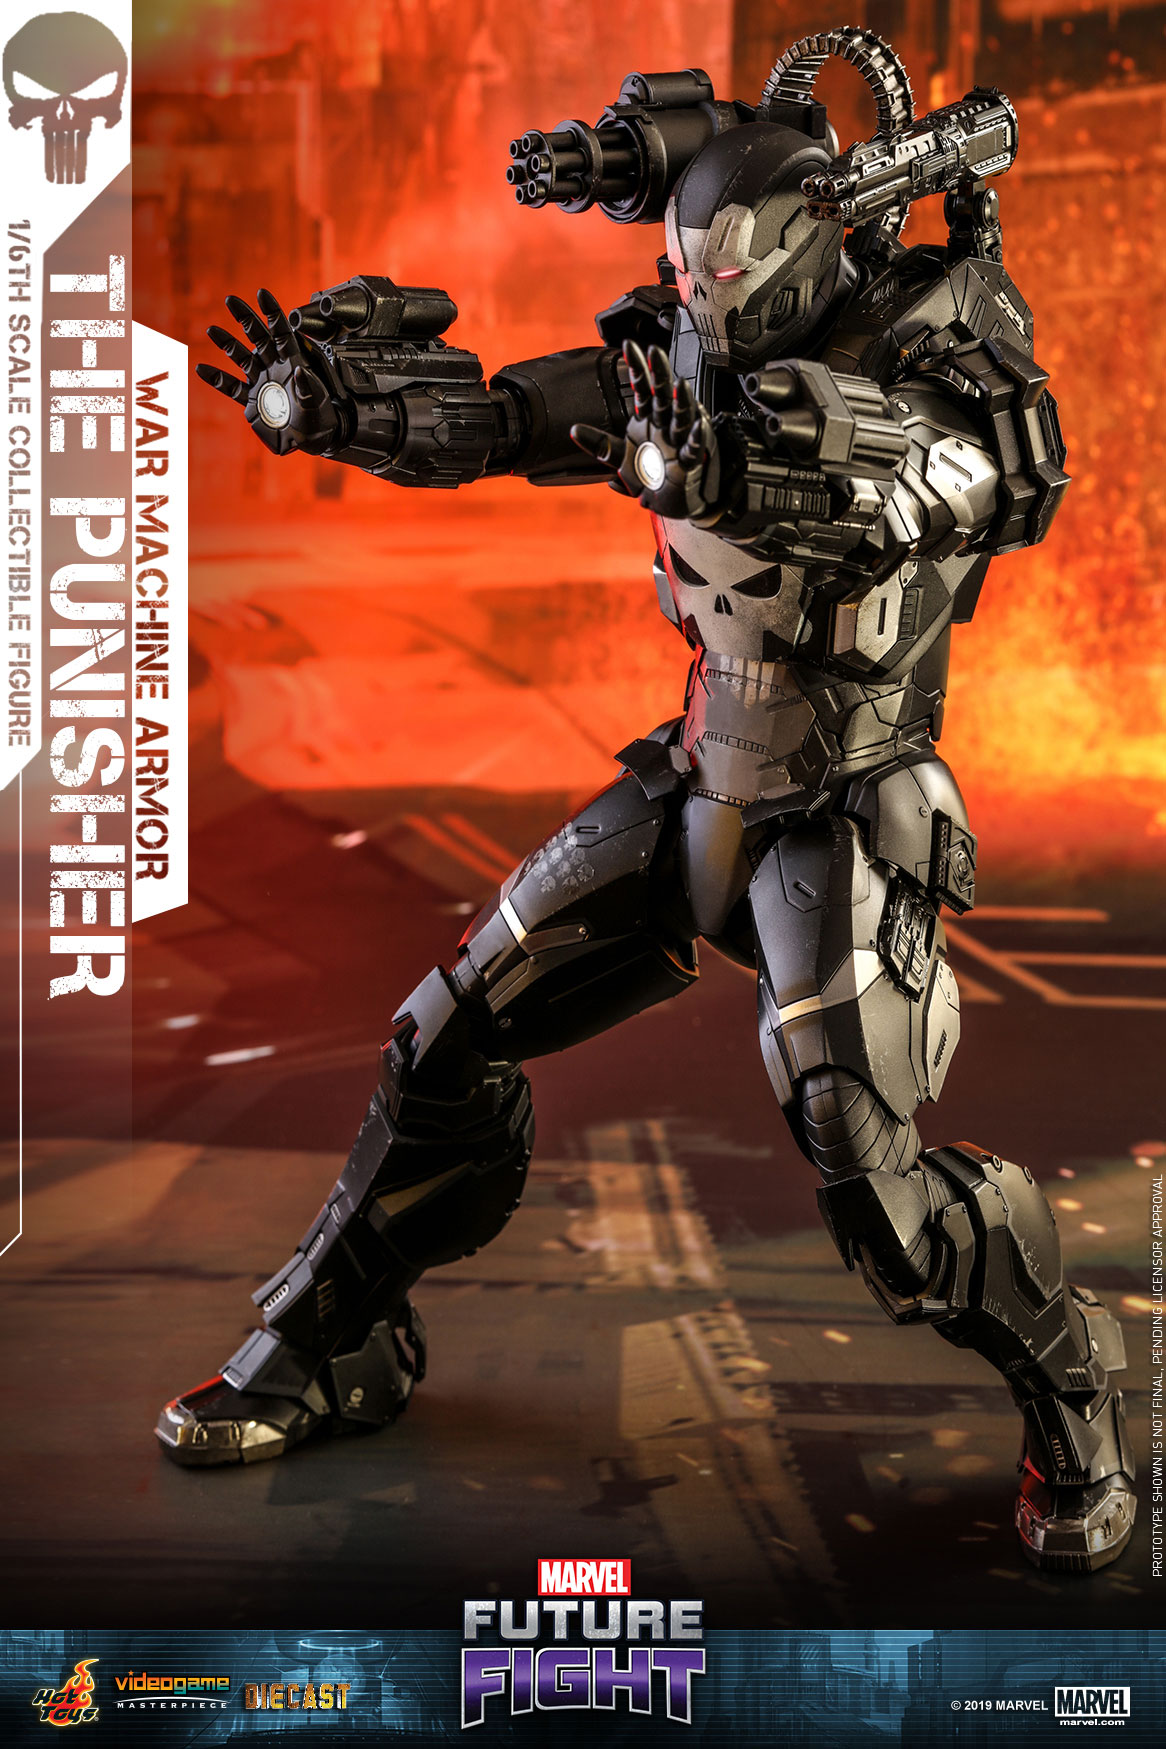 Hot-Toys---MARVEL-Future-Fight--The-Punisher-(War-Machine-Armor)-Collectible-Figure---PR19